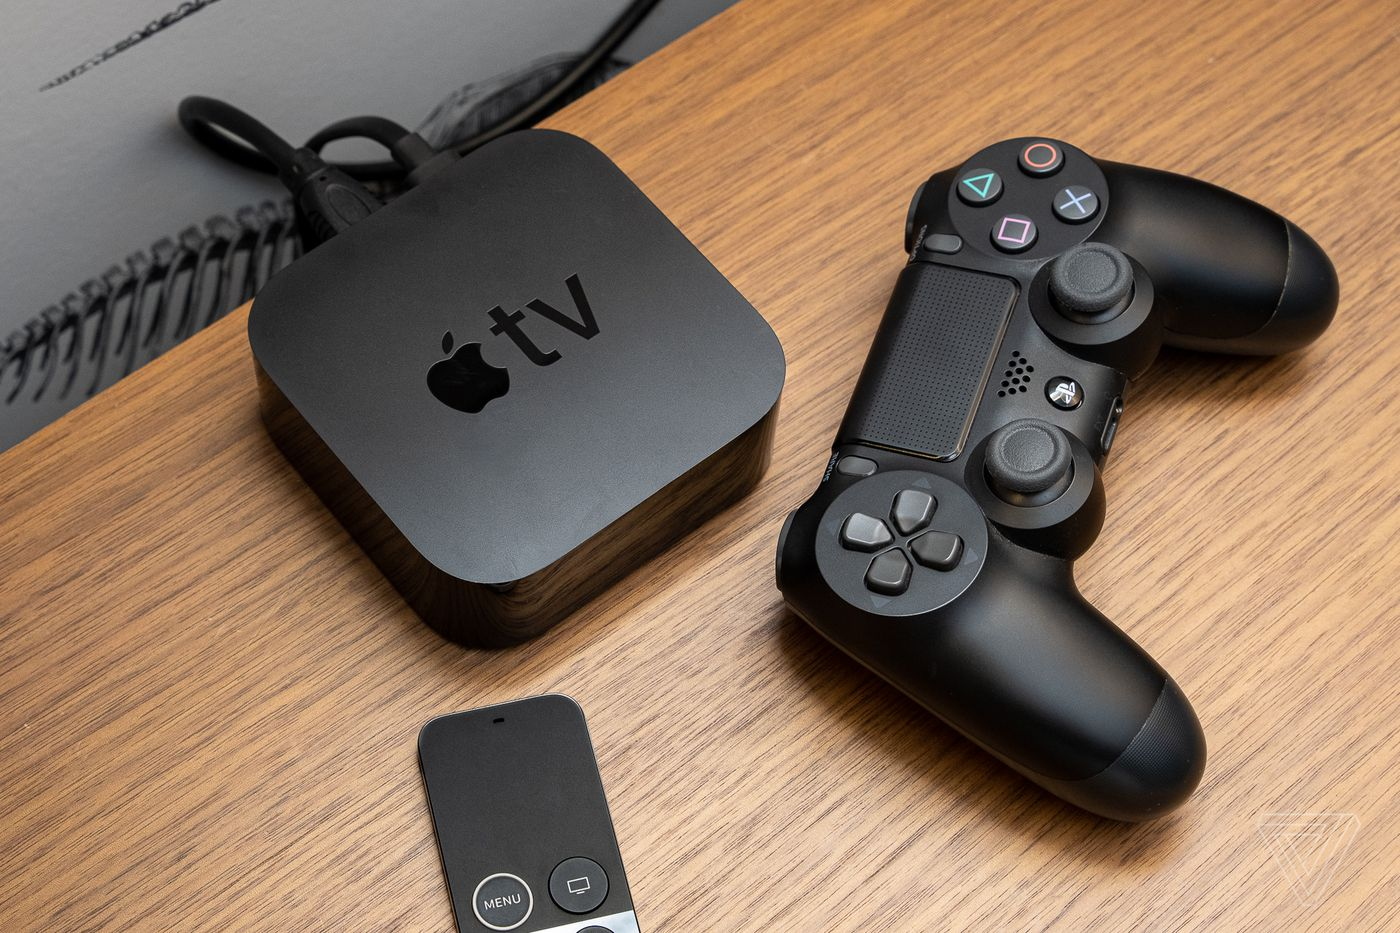 How to pair PS4 or Xbox controllers with iPhone, iPad, Apple